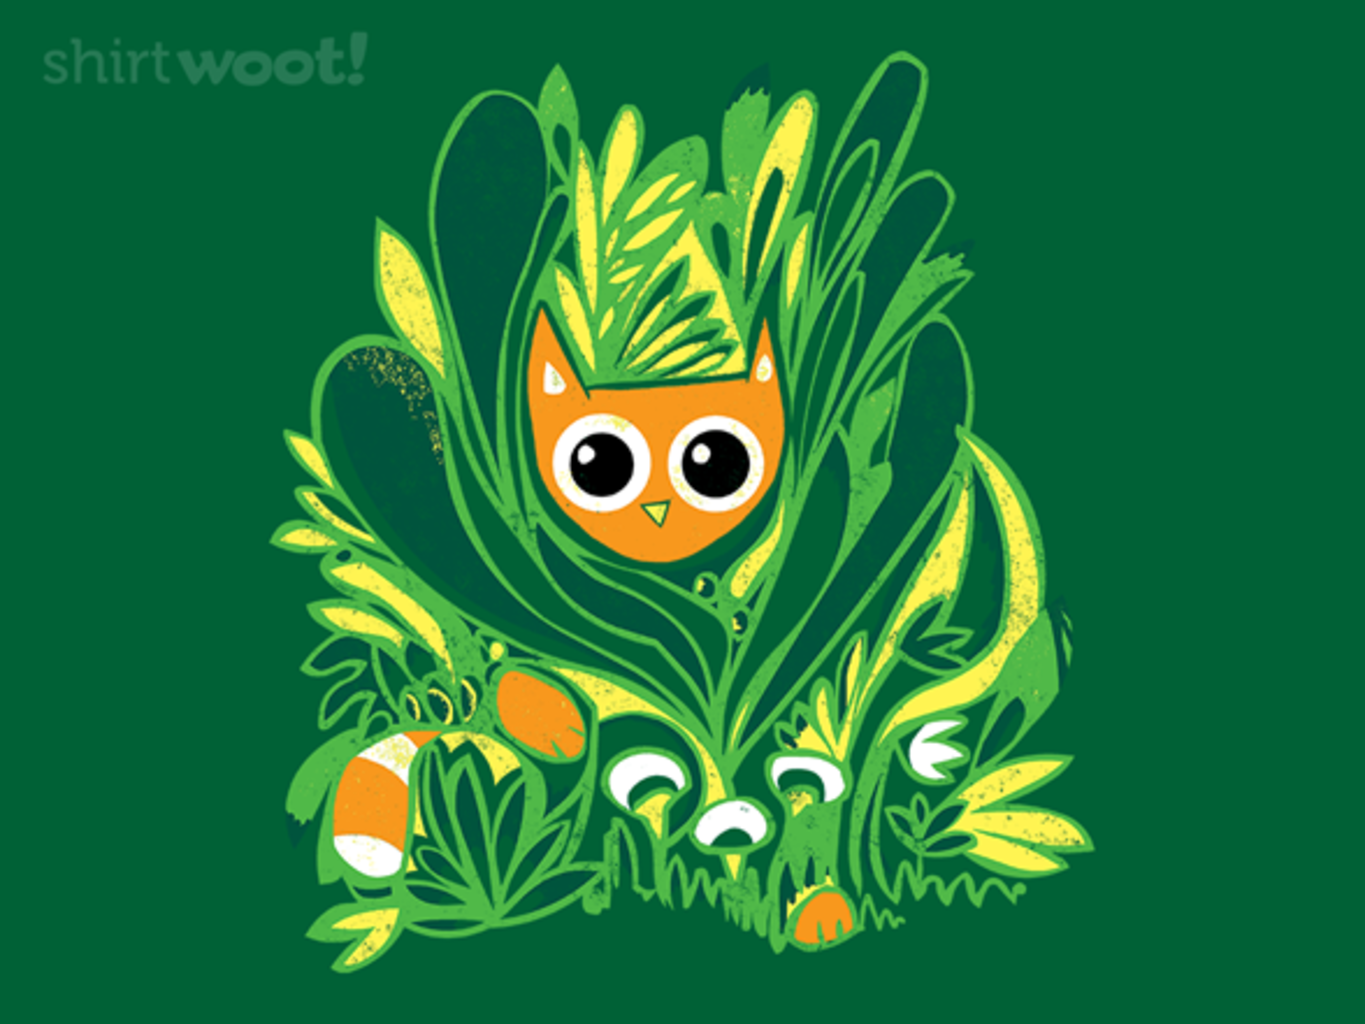 Woot!: Cat In The Wild